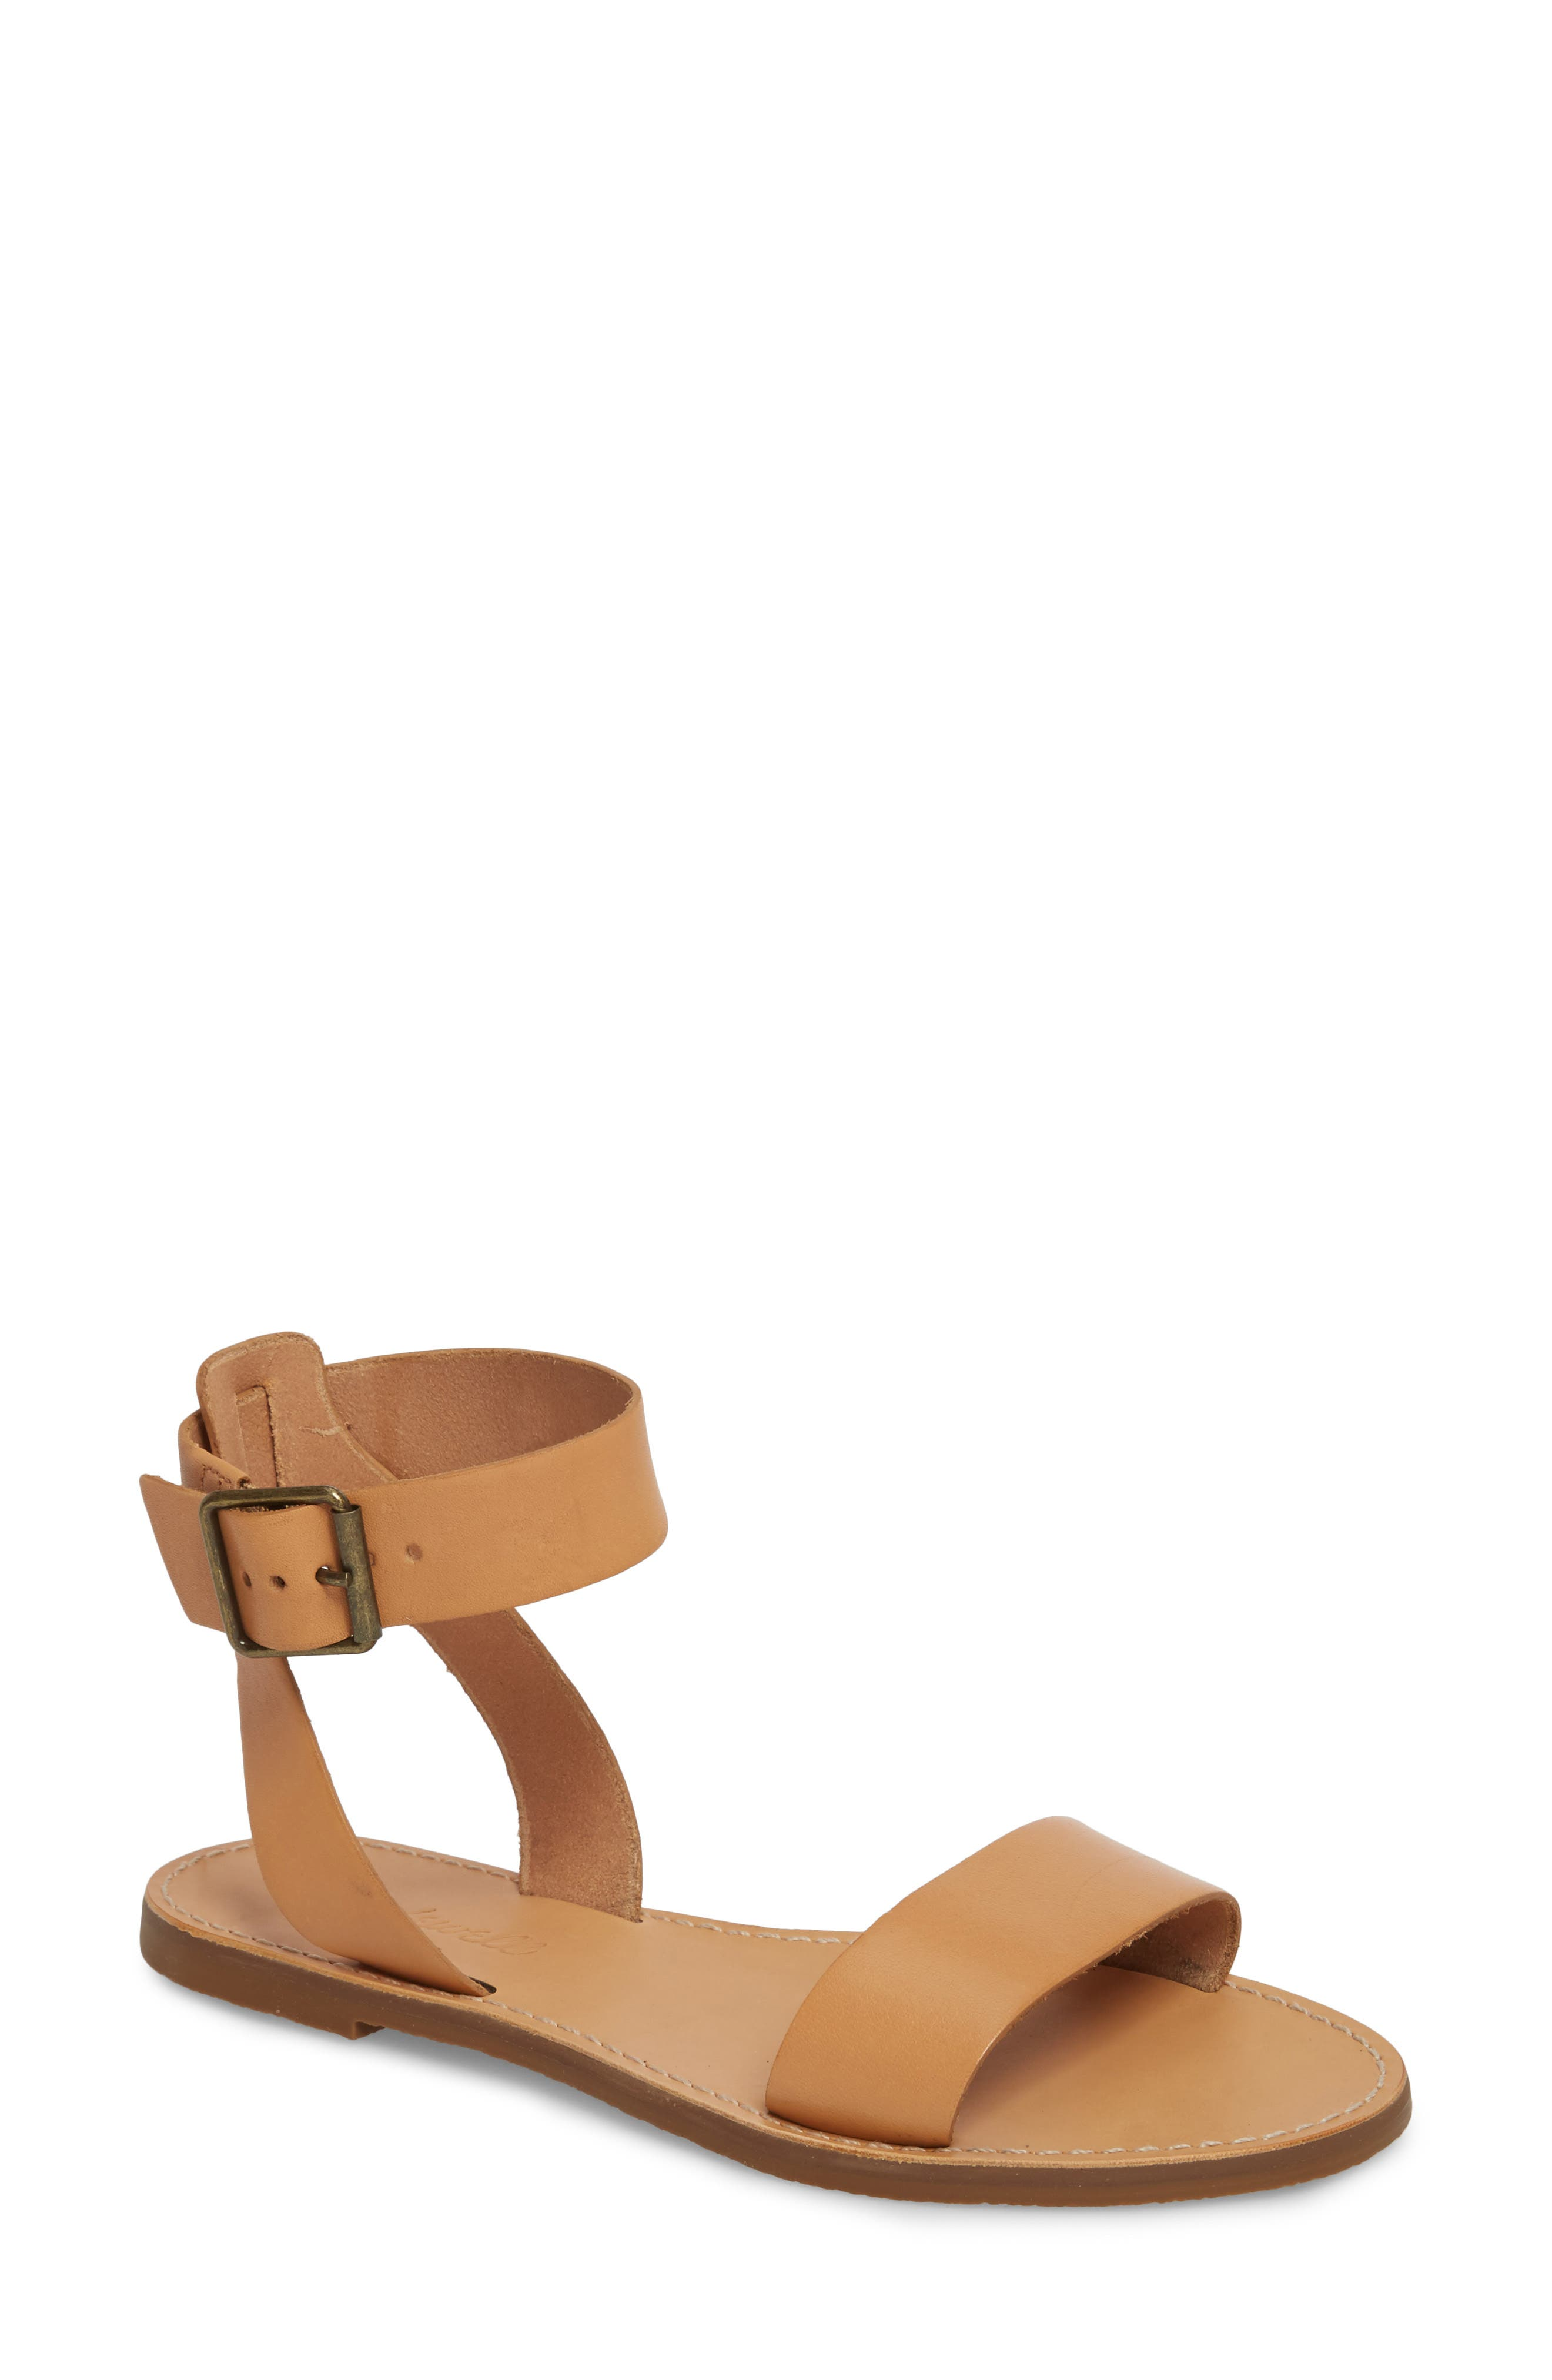 Madewell The Boardwalk Ankle Strap Sandal (Women)